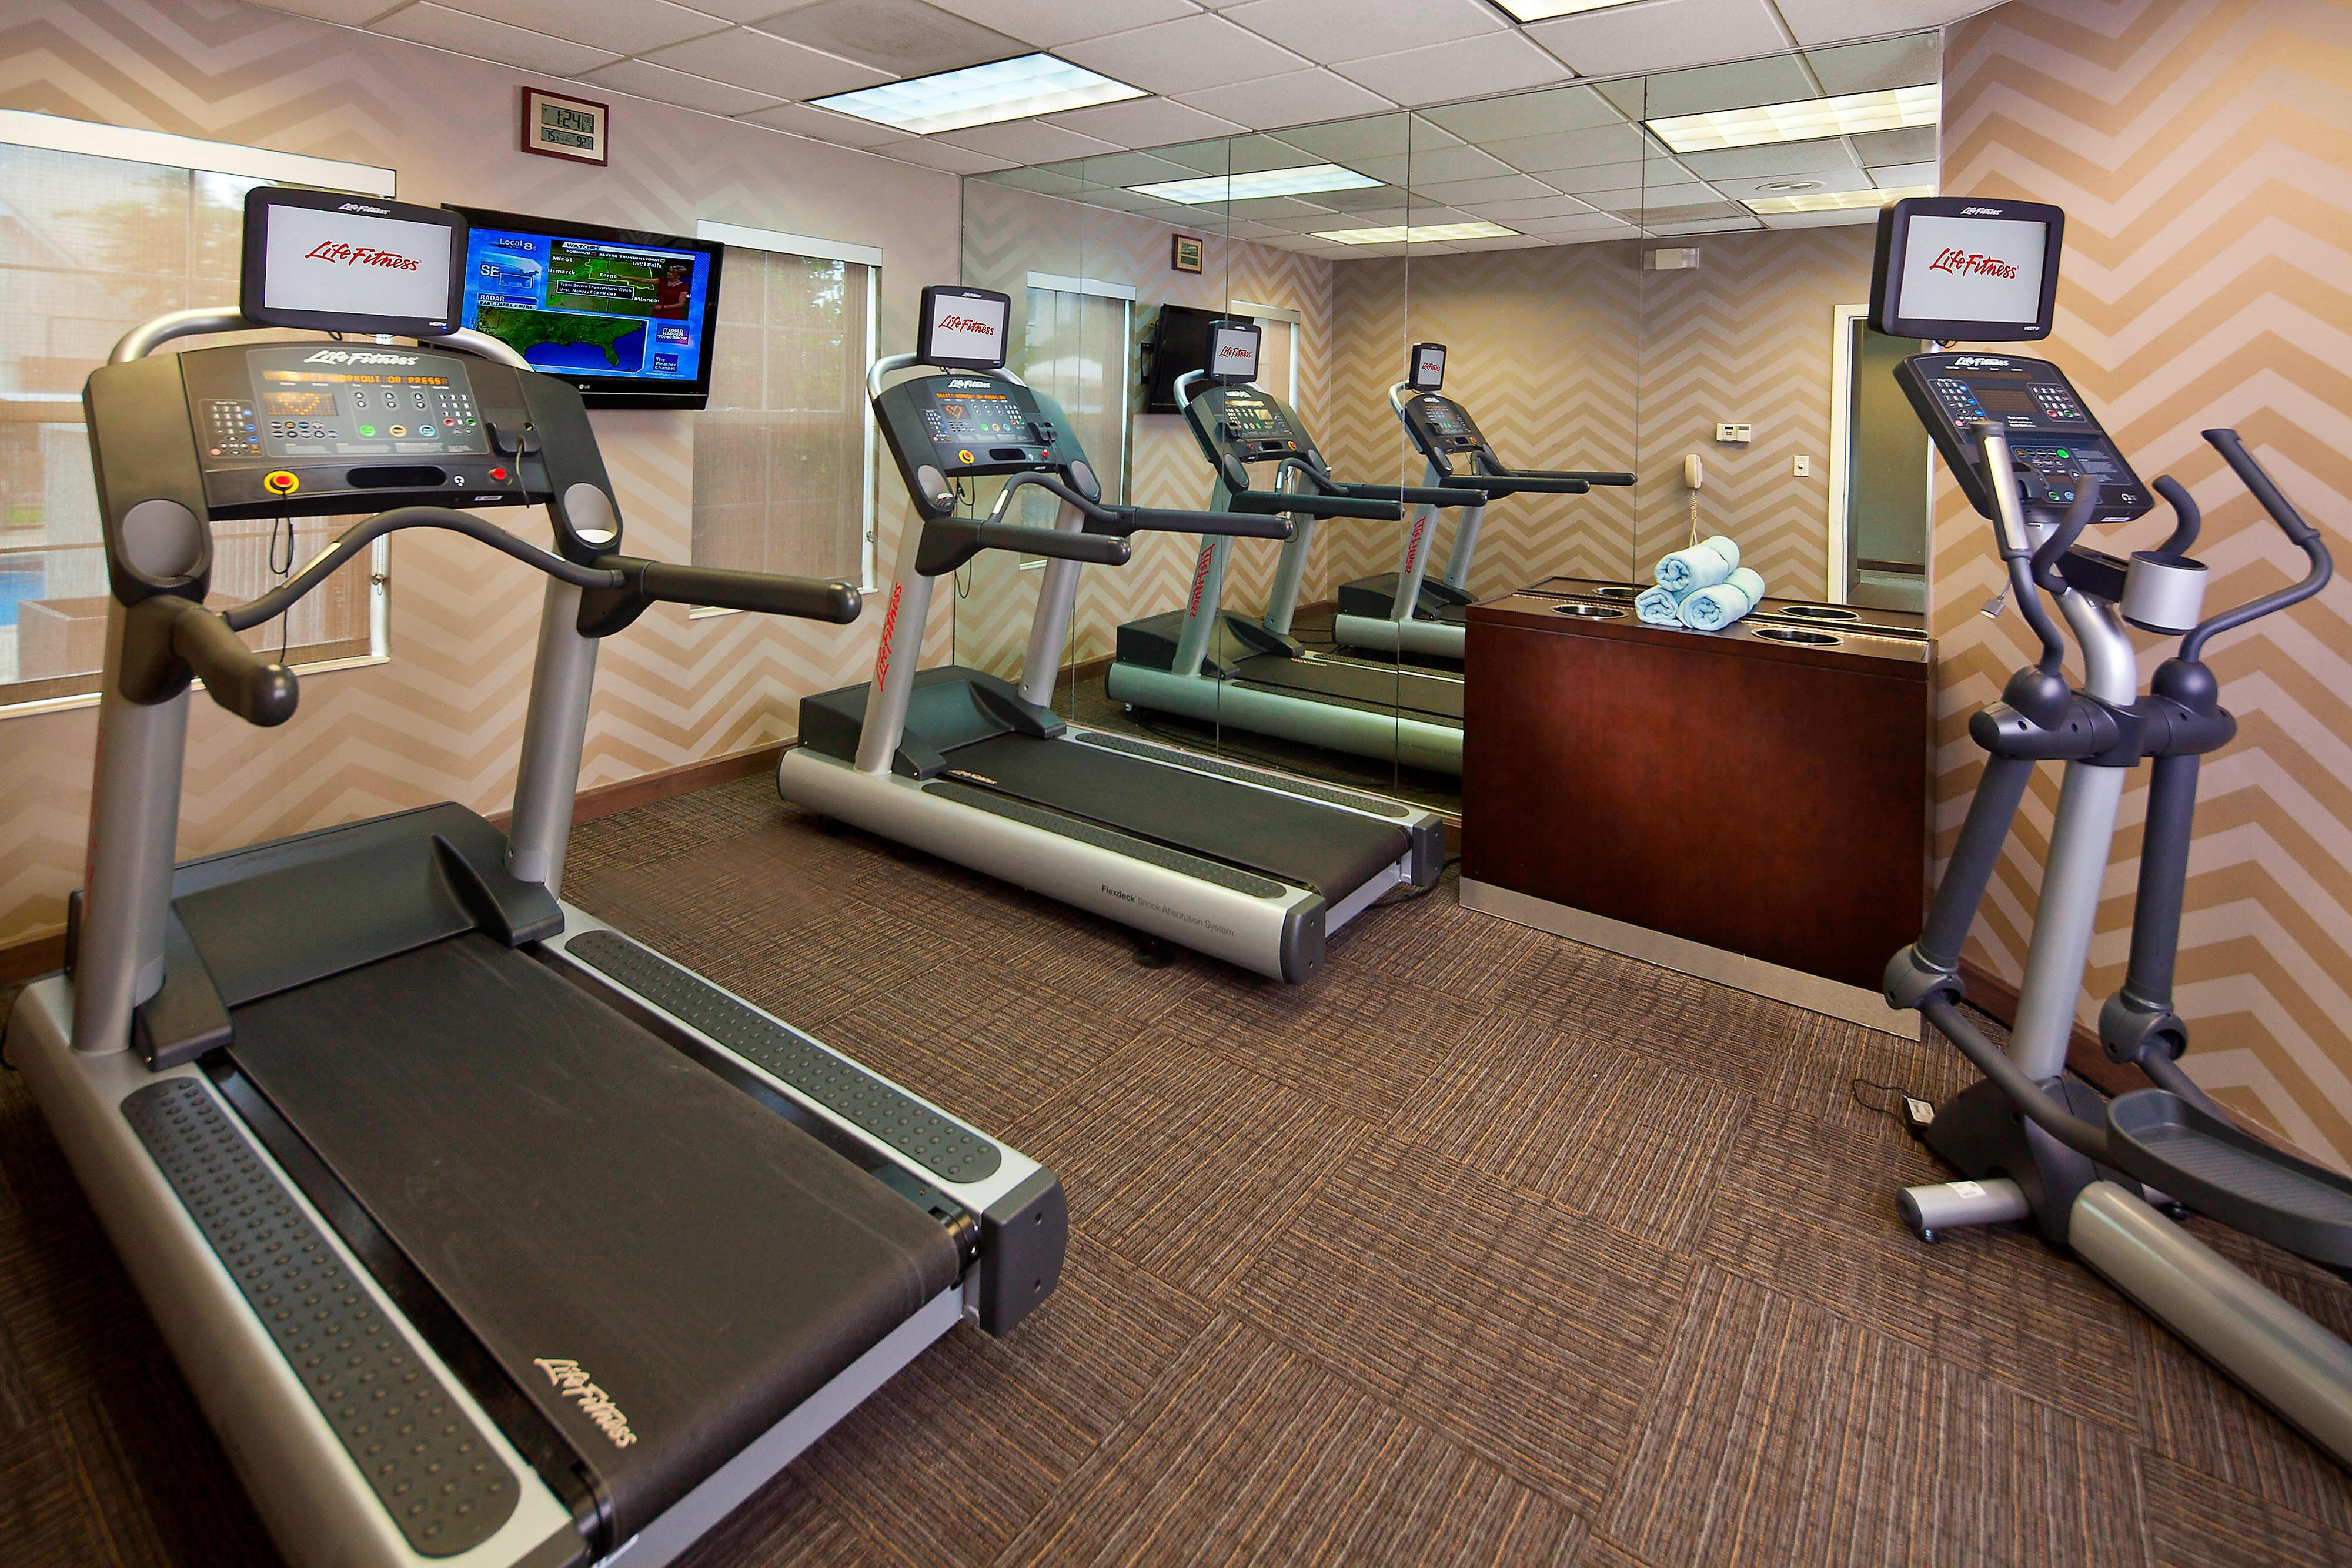 Residence Inn Baton Rouge Fitness Center